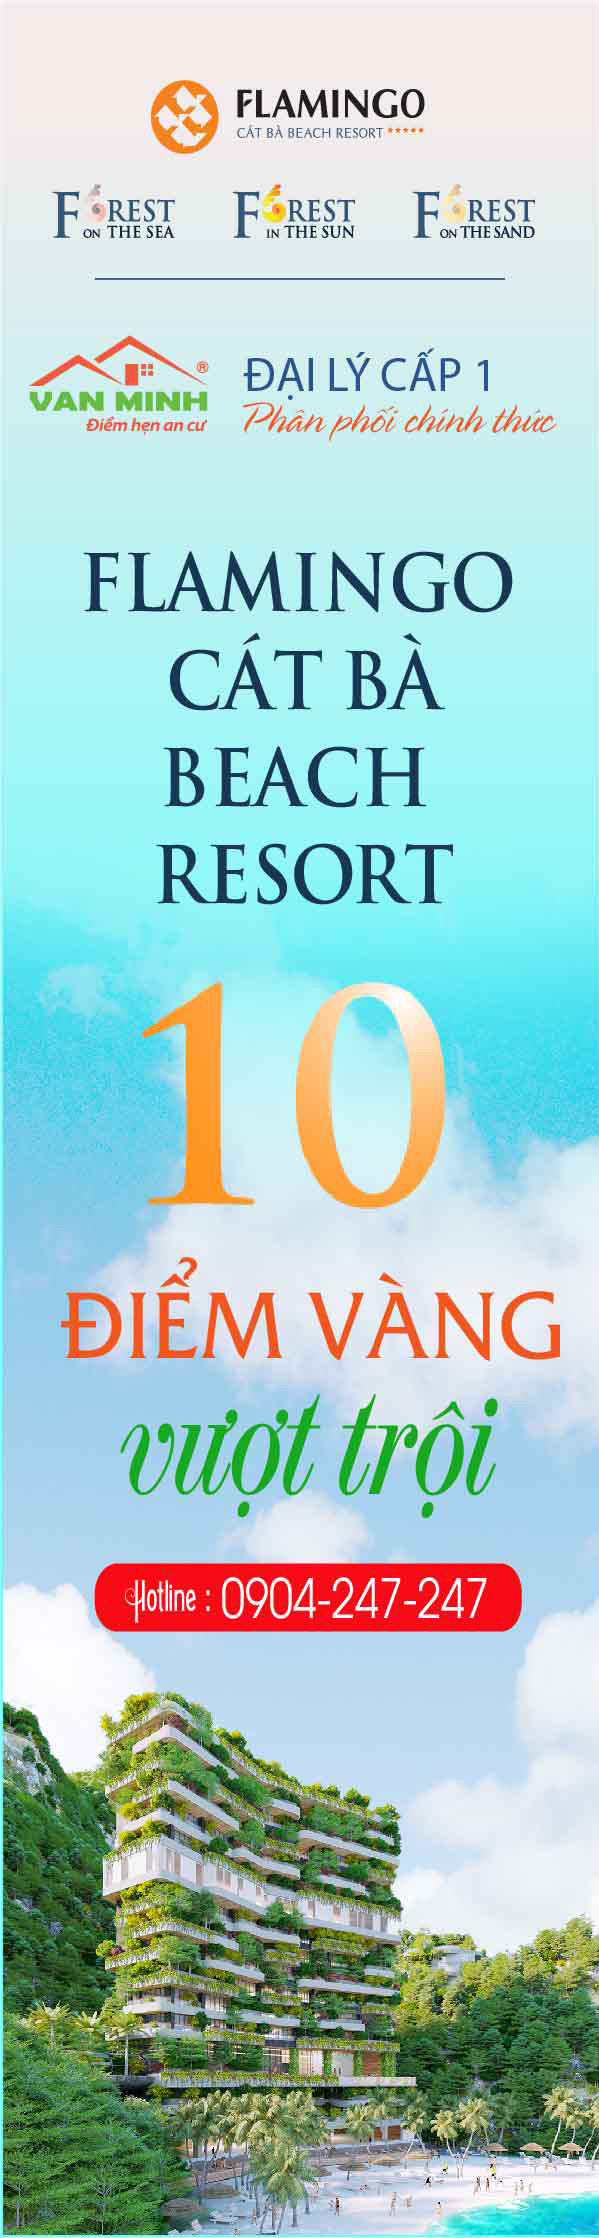 Flamingo Cát Bà Beach Resort